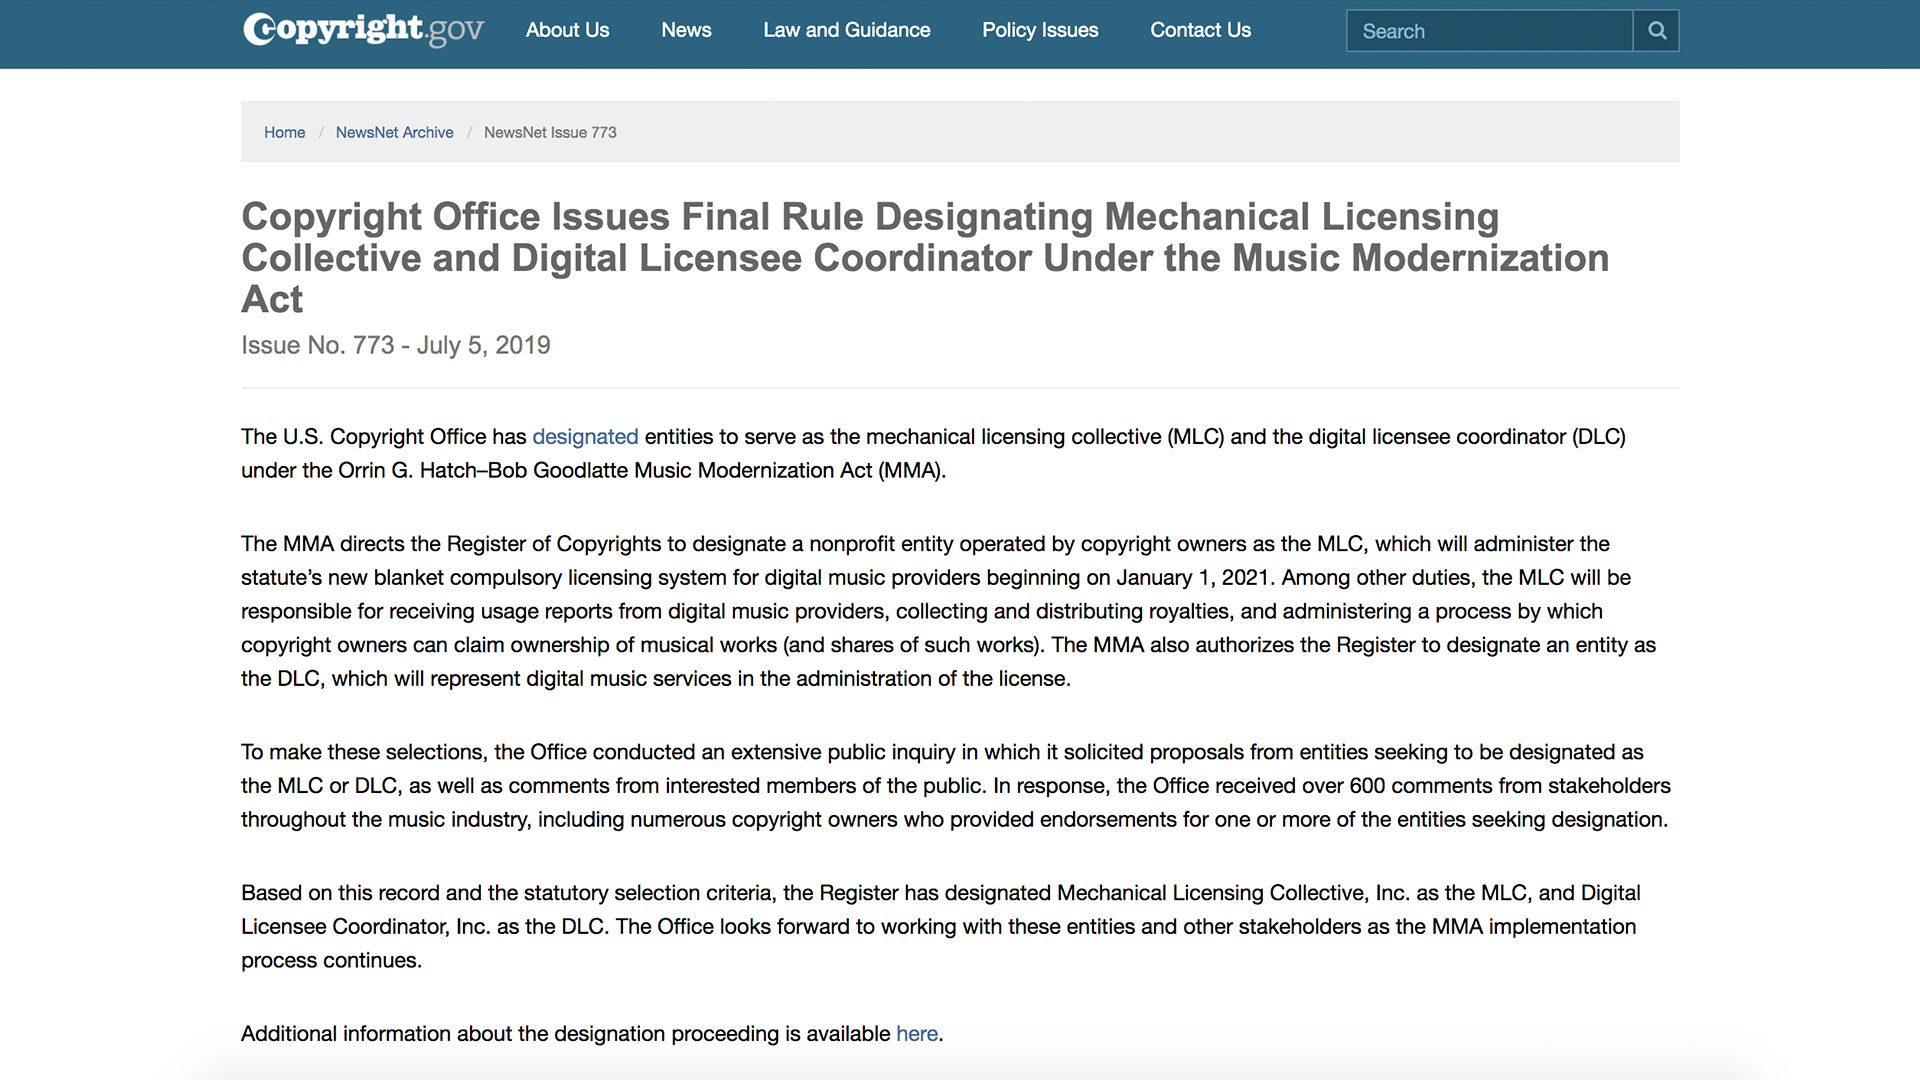 Fairness Rocks News Copyright Office Issues Final Rule Designating Mechanical Licensing Collective and Digital Licensee Coordinator Under the Music Modernization Act